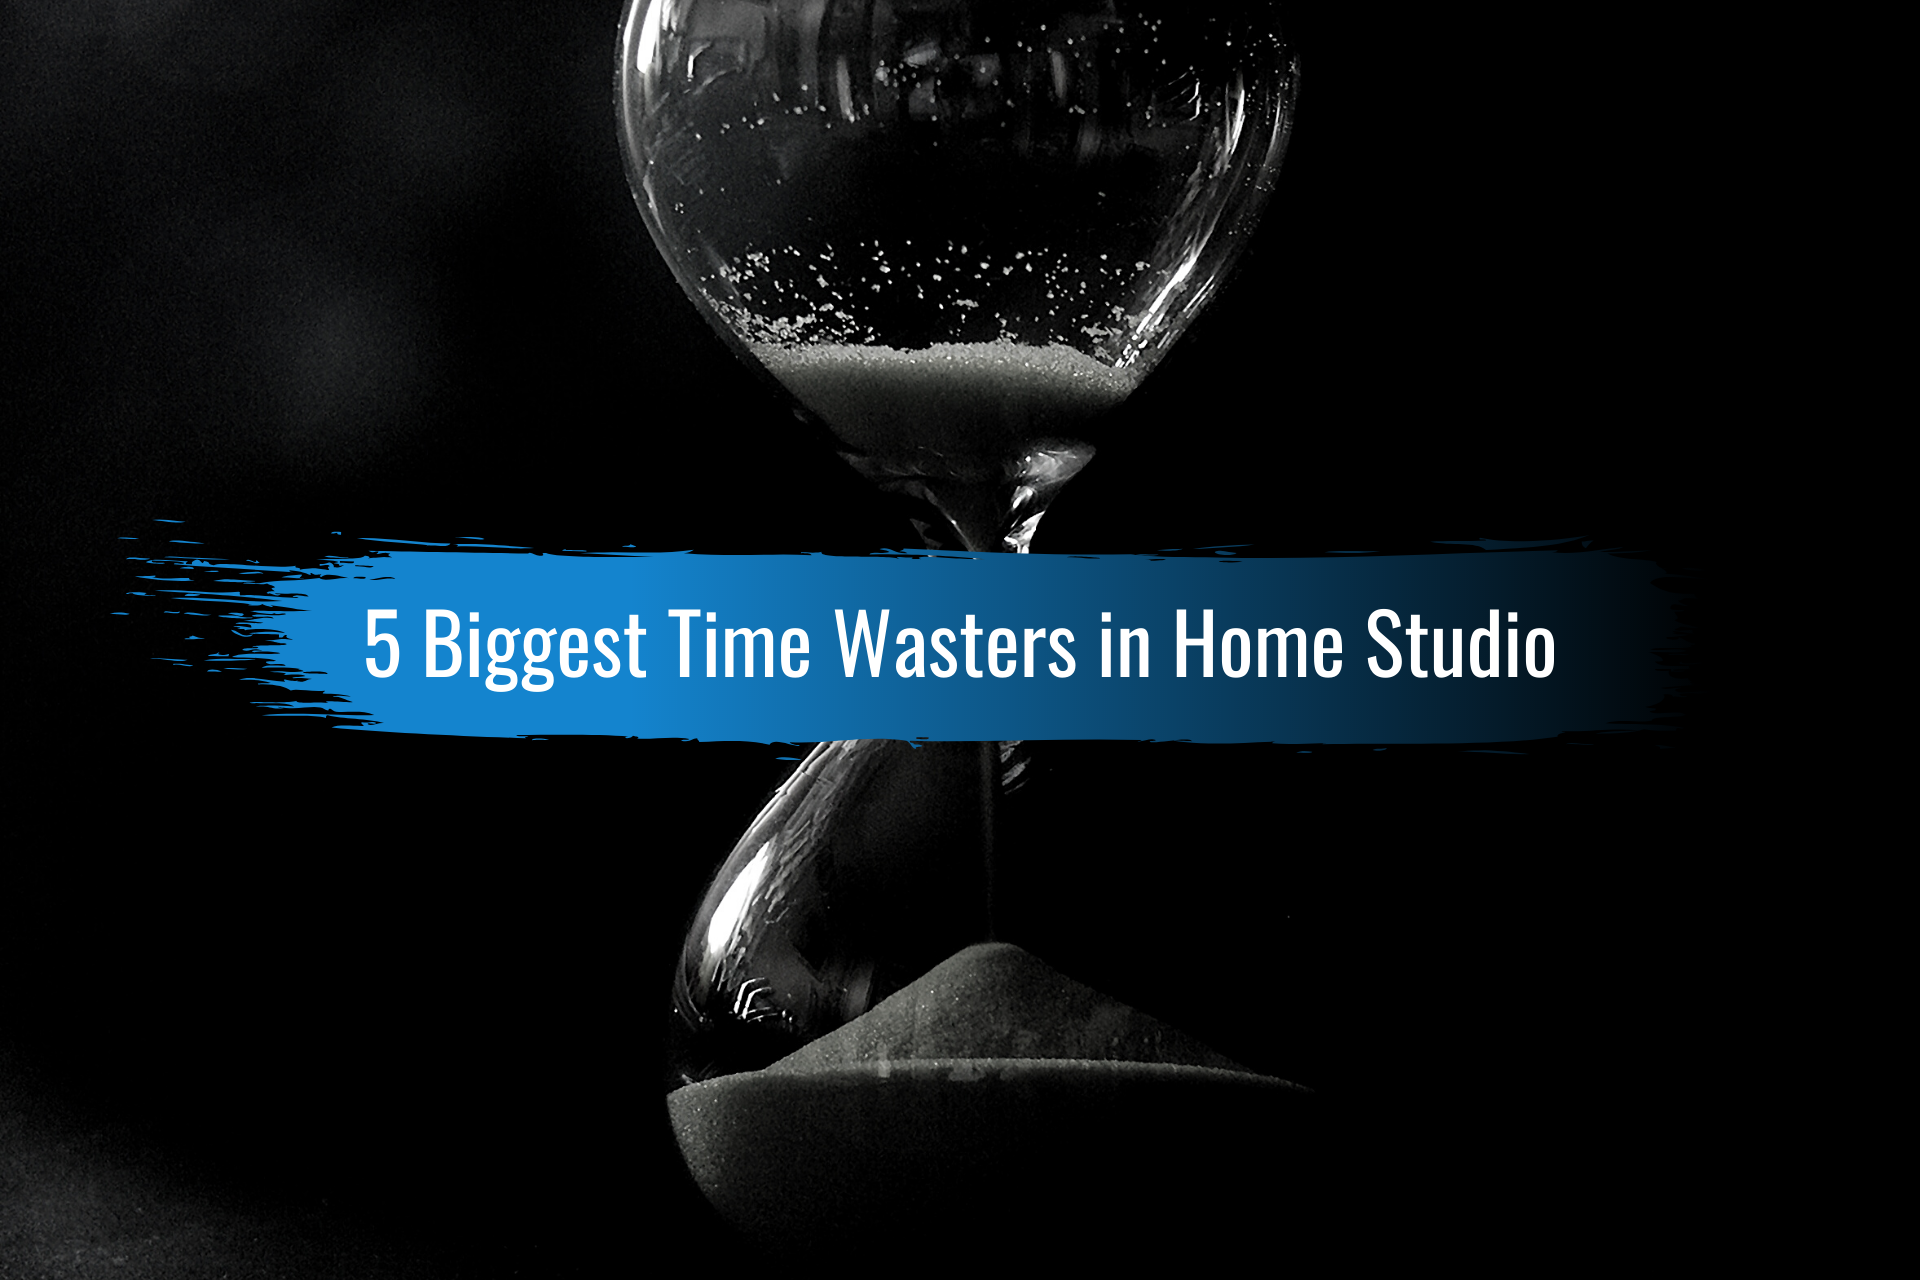 5 Biggest Time Wasters in Home Studio